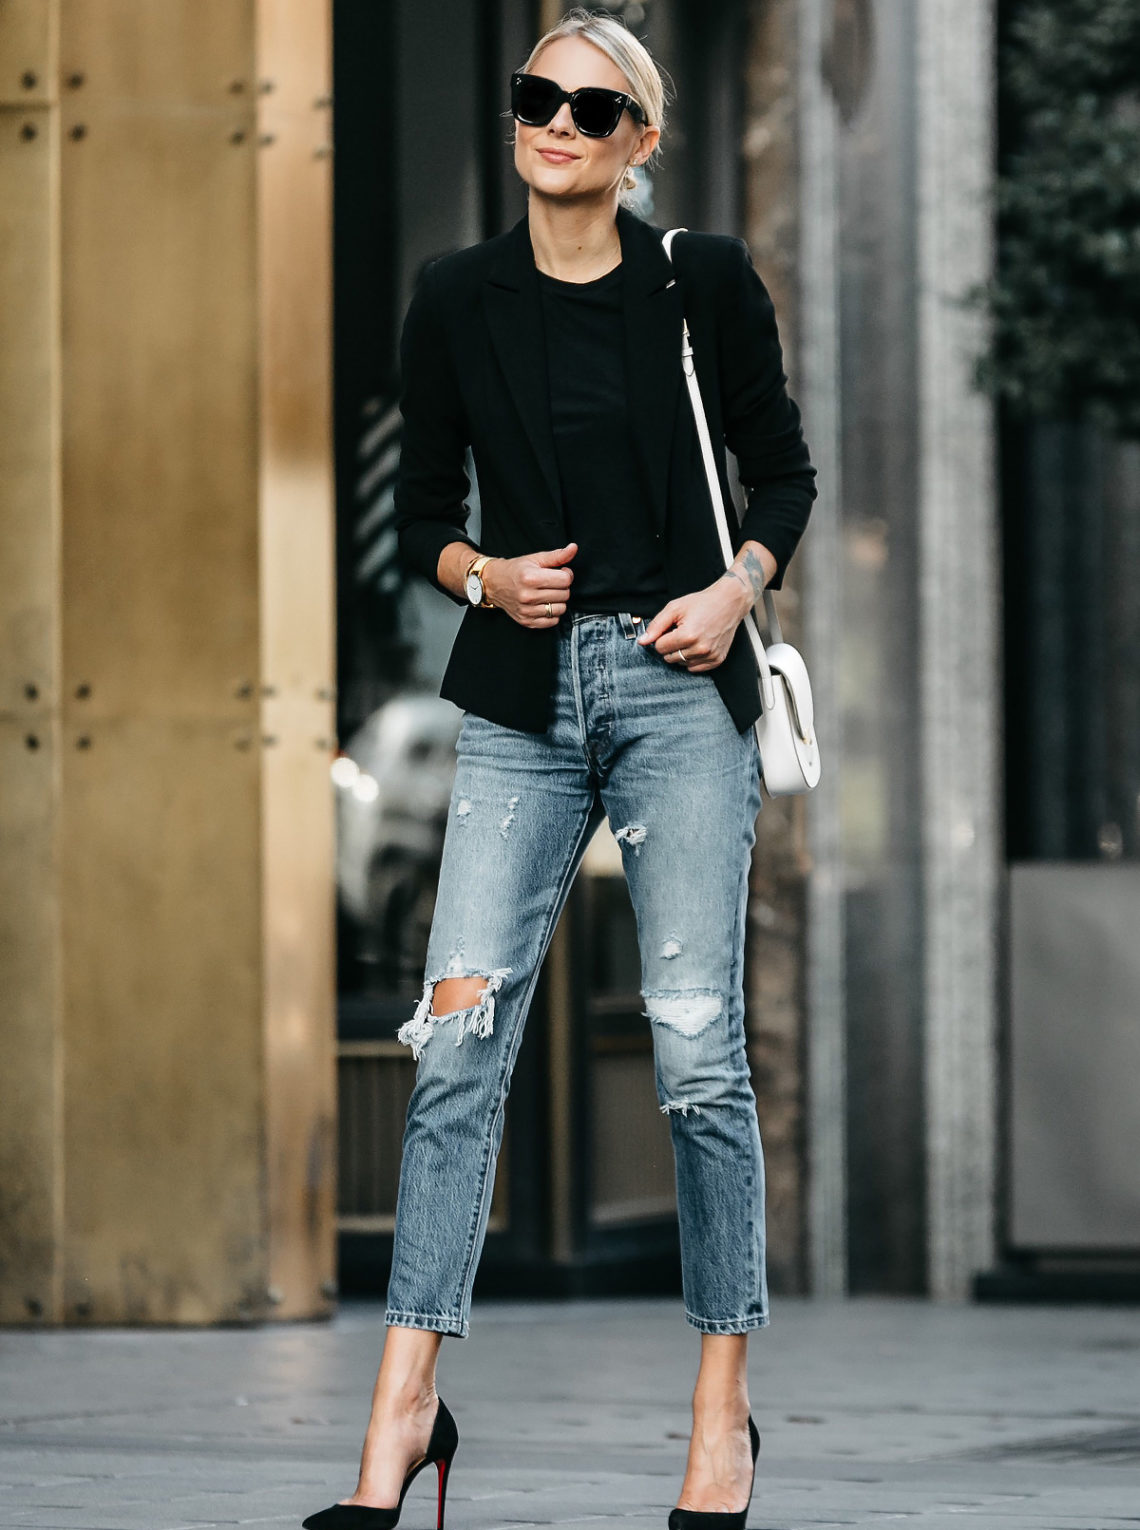 Blonde Woman Wearing Black Blazer Black Tshirt Denim Ripped Jeans Outfit Christian Louboutin Black Pumps Celine Trotteur White Handbag Fashion Jackson Dallas Blogger Fashion Blogger Street Style